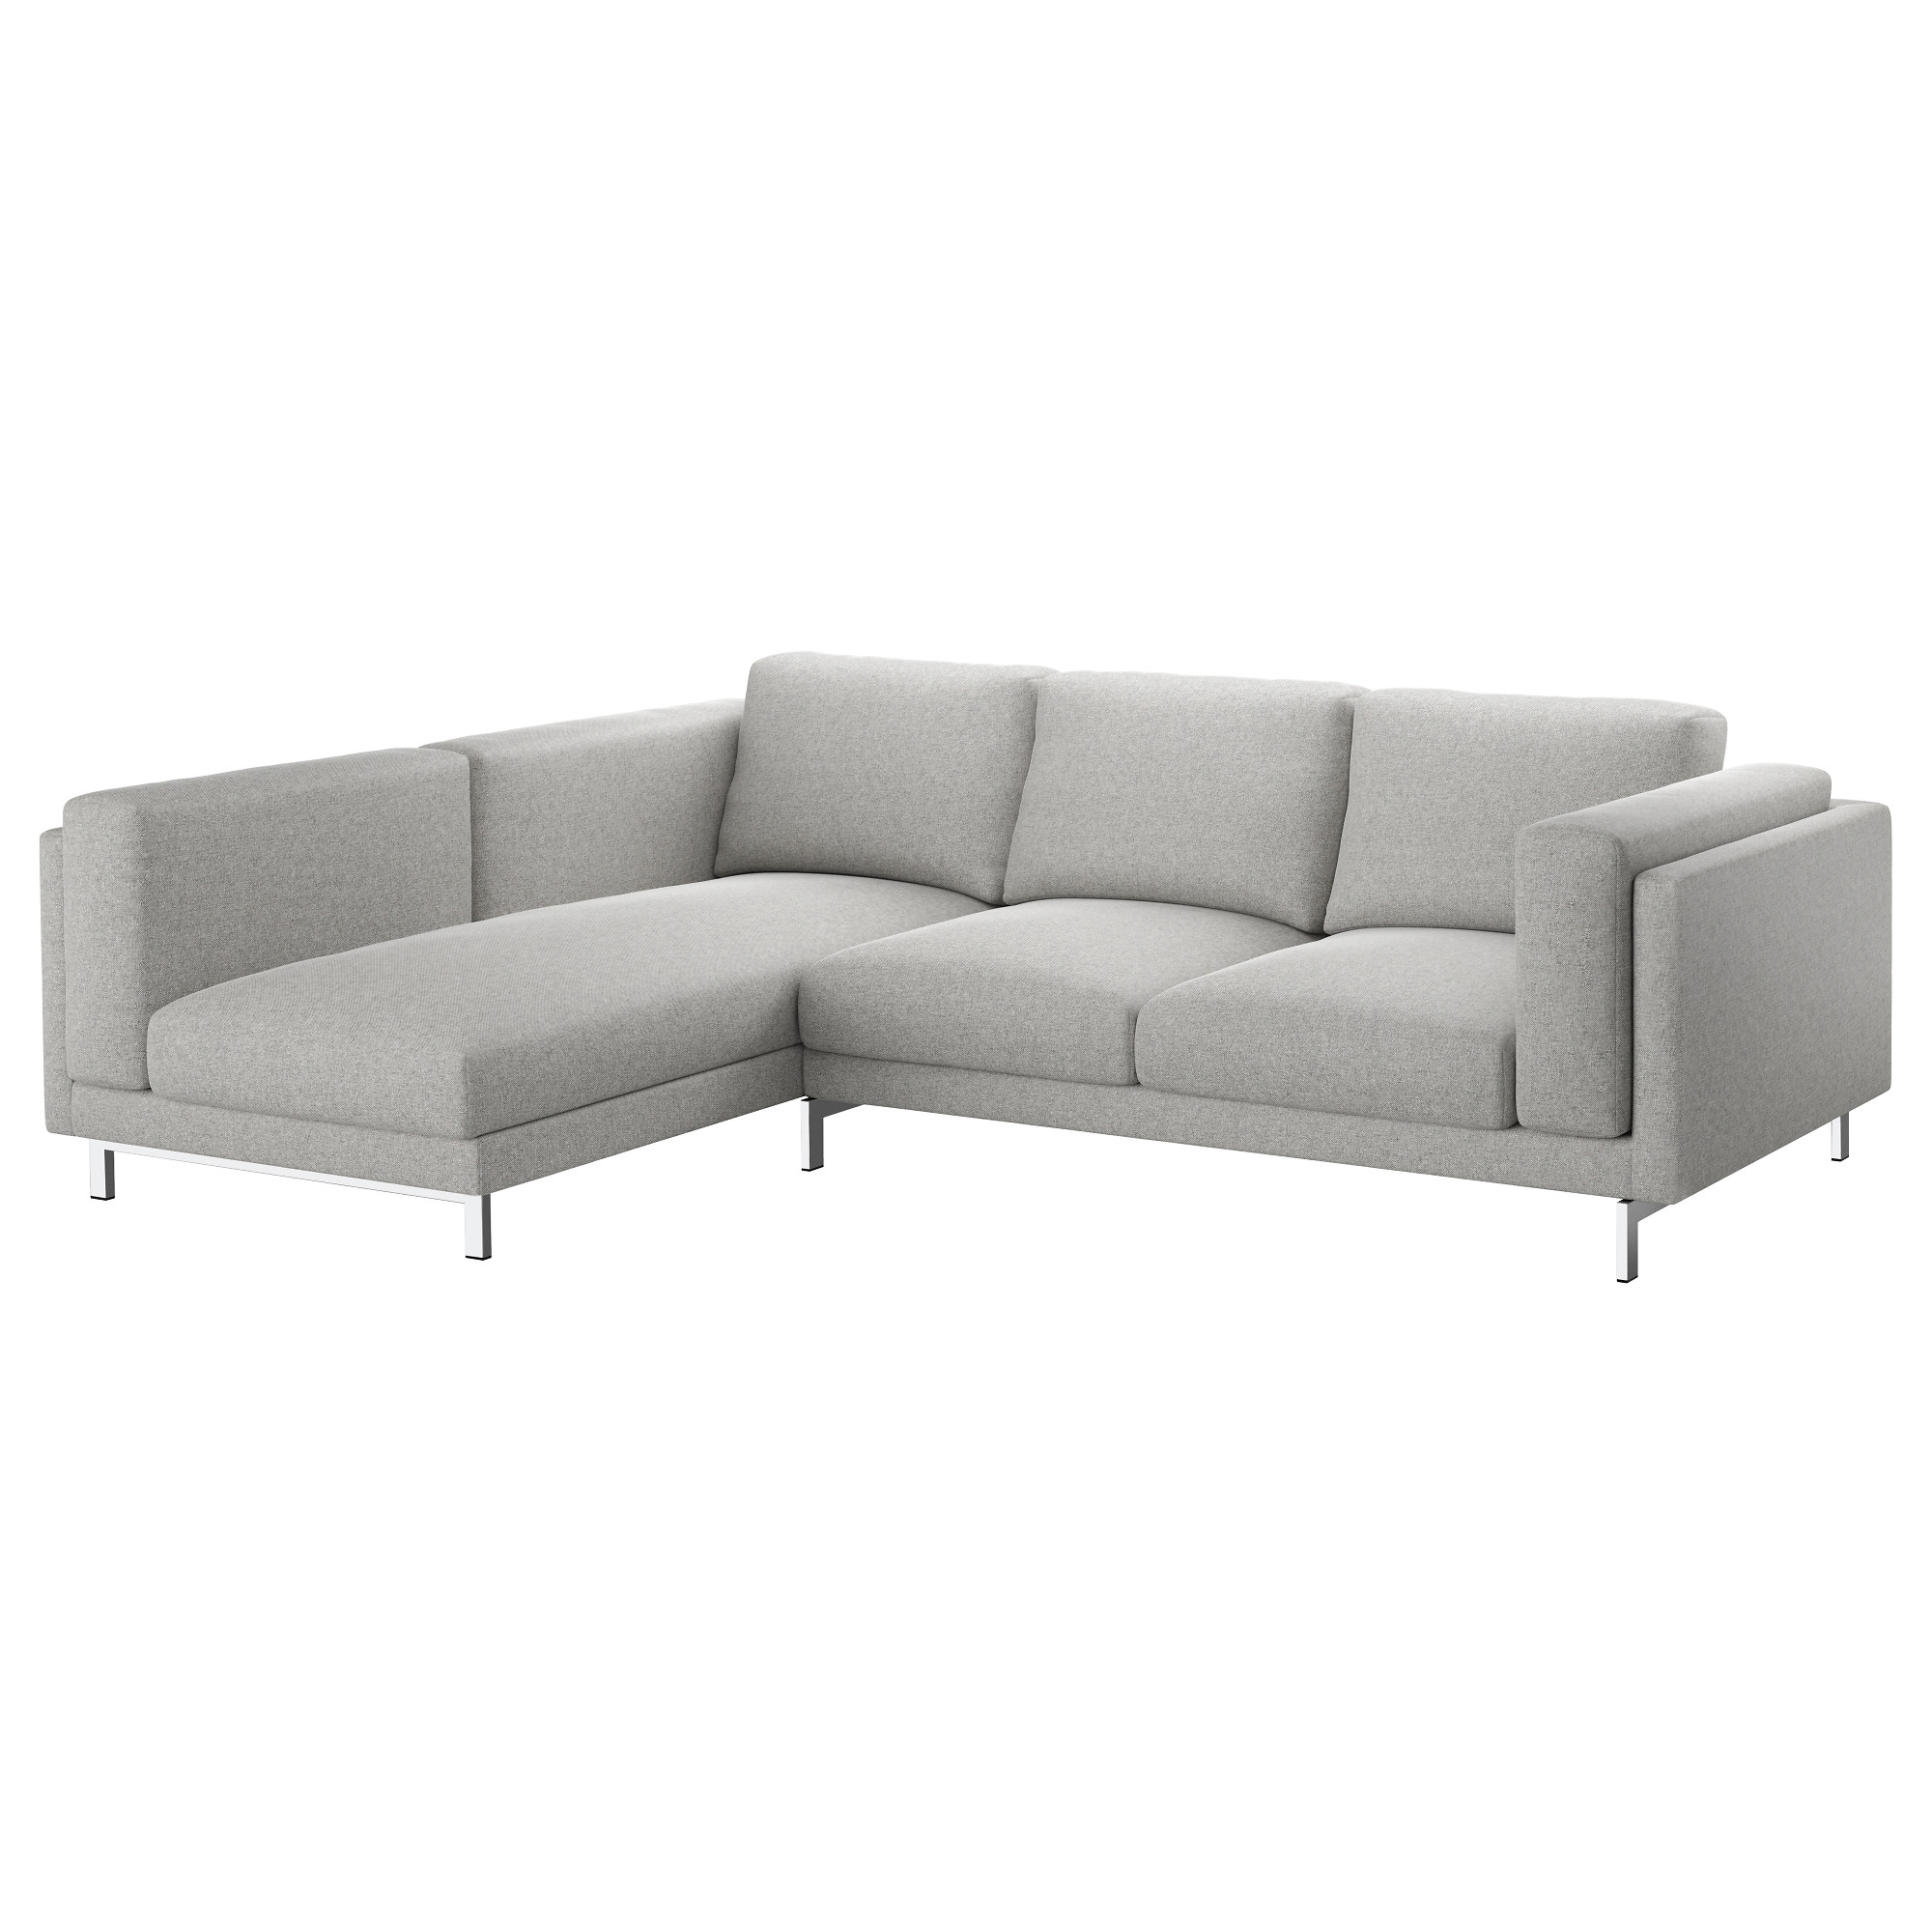 Schlafsofa ikea  NOCKEBY Sofa - left/Tallmyra light beige, chrome plated - IKEA